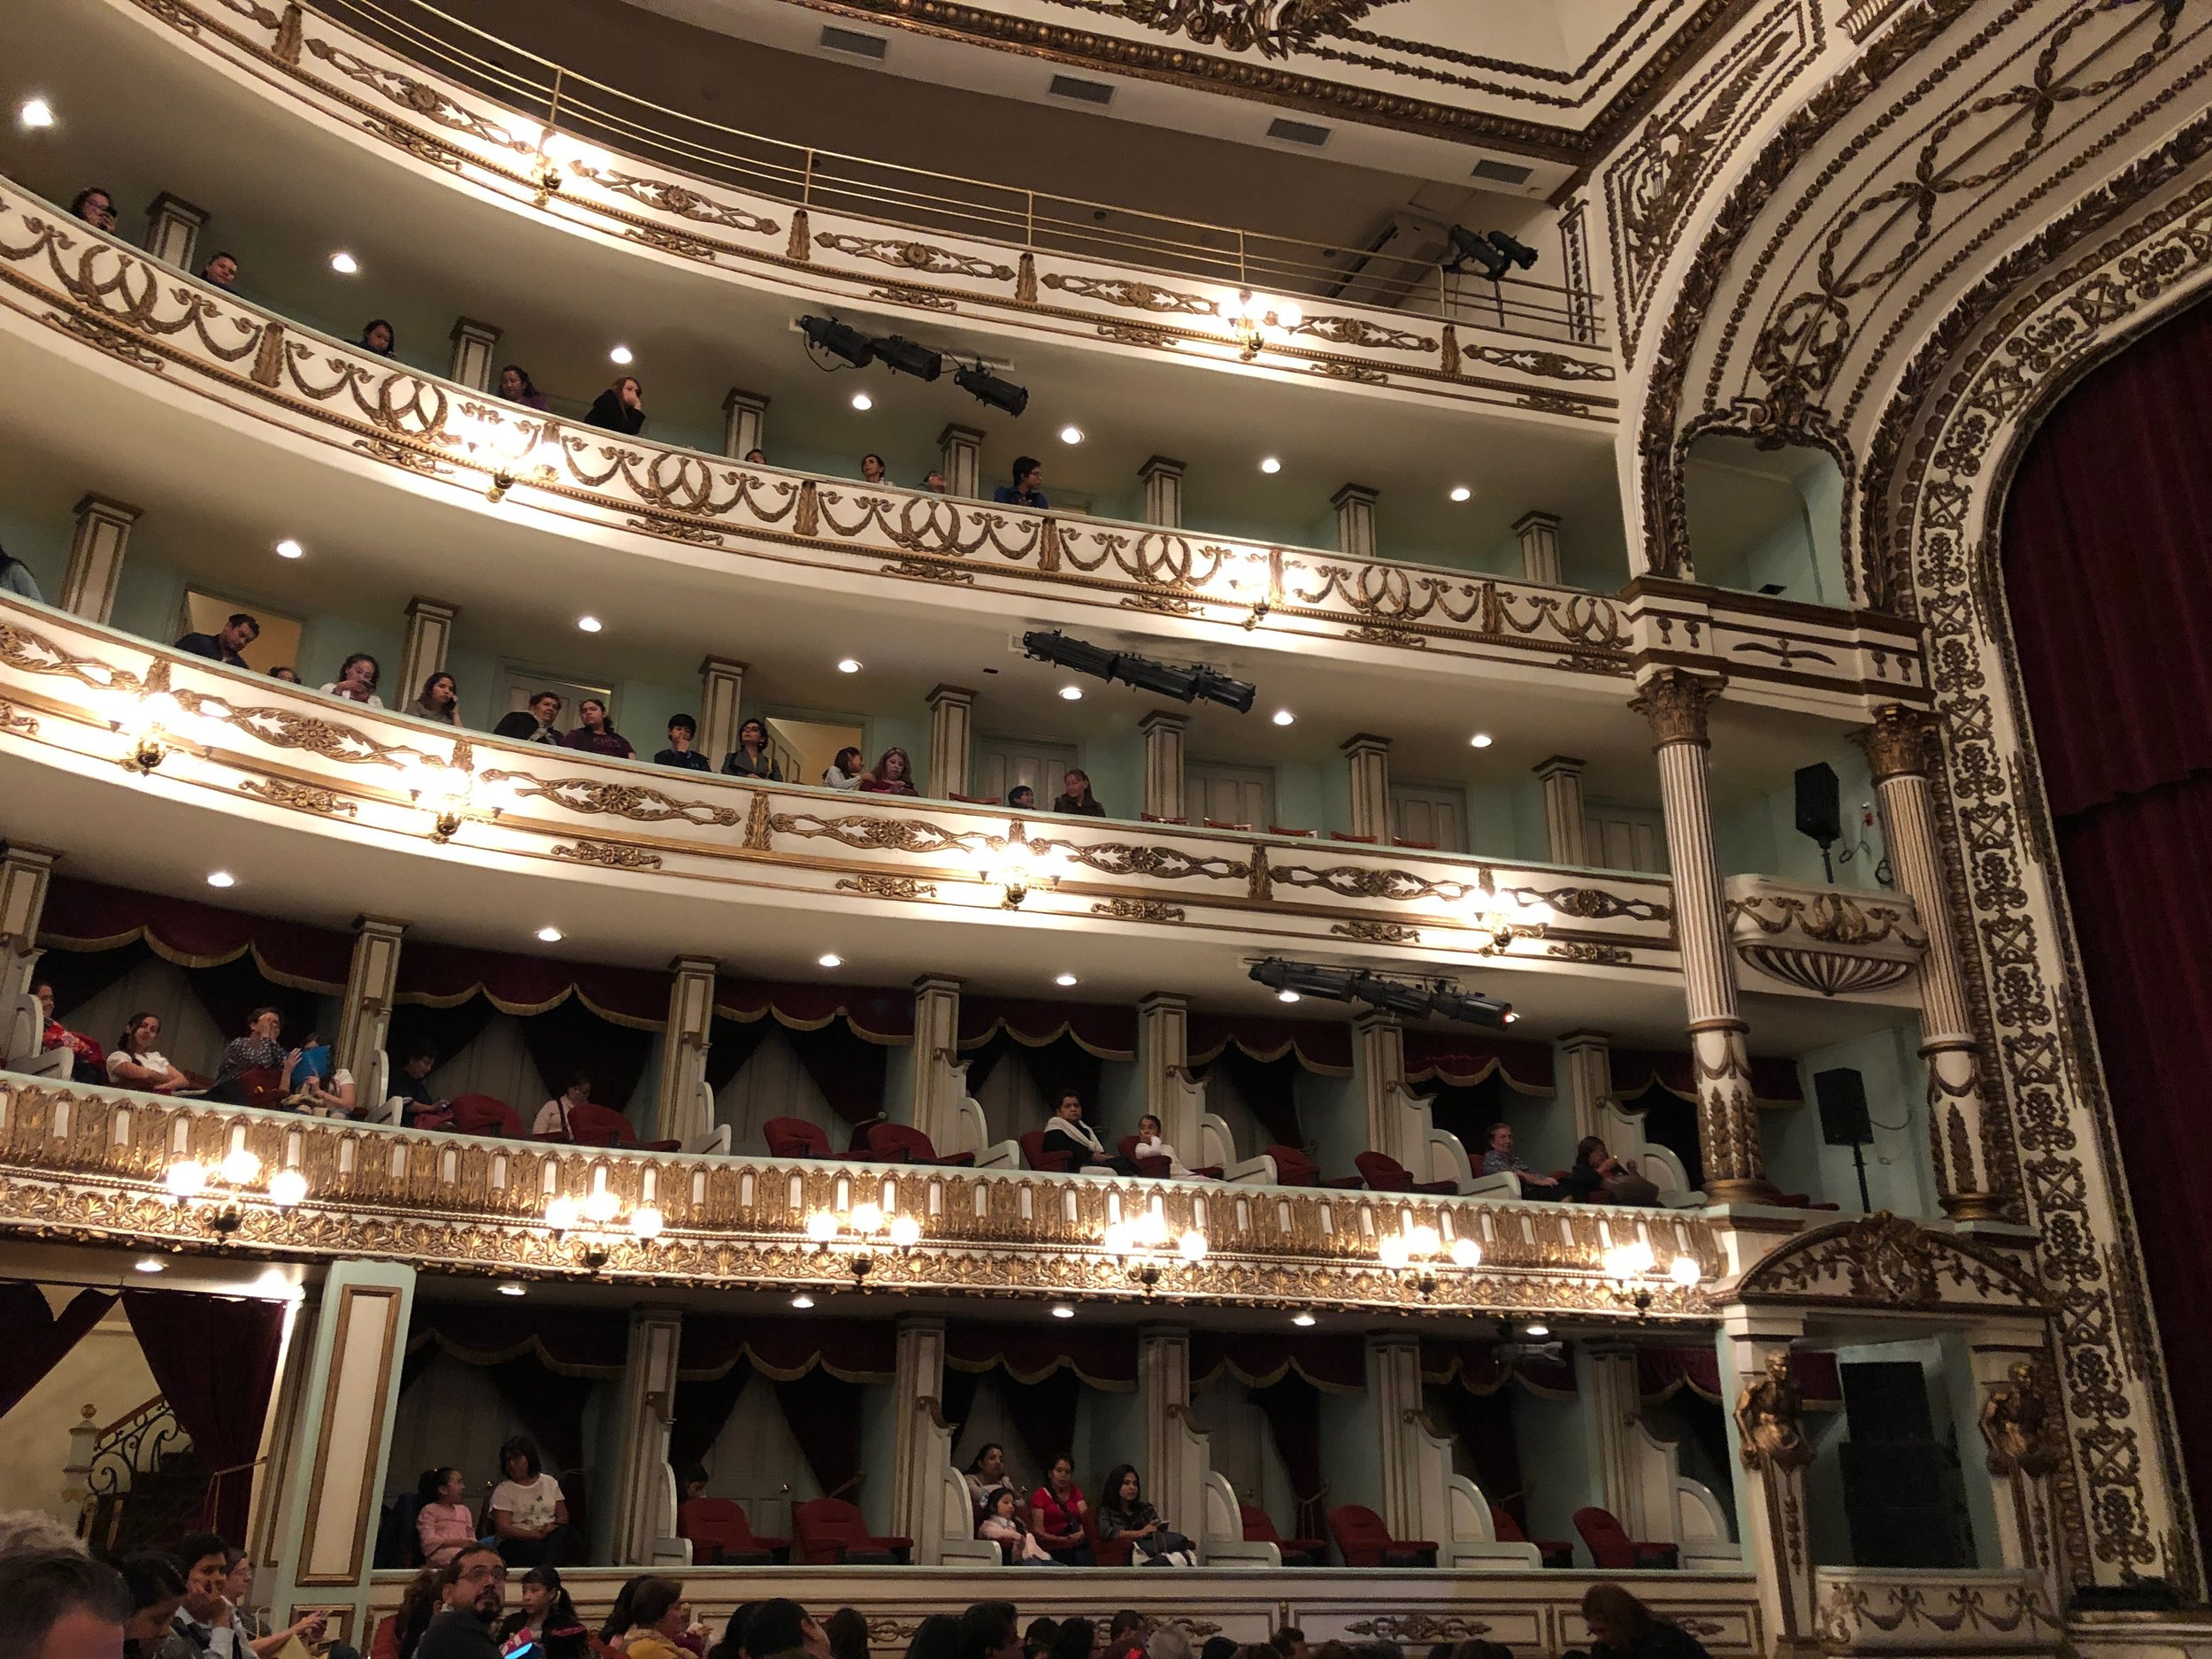 Inside the theatre where we saw the ballet. The theatre is over 110 years old and is beautiful both inside and out. The girls had never seen a theatre like it before.